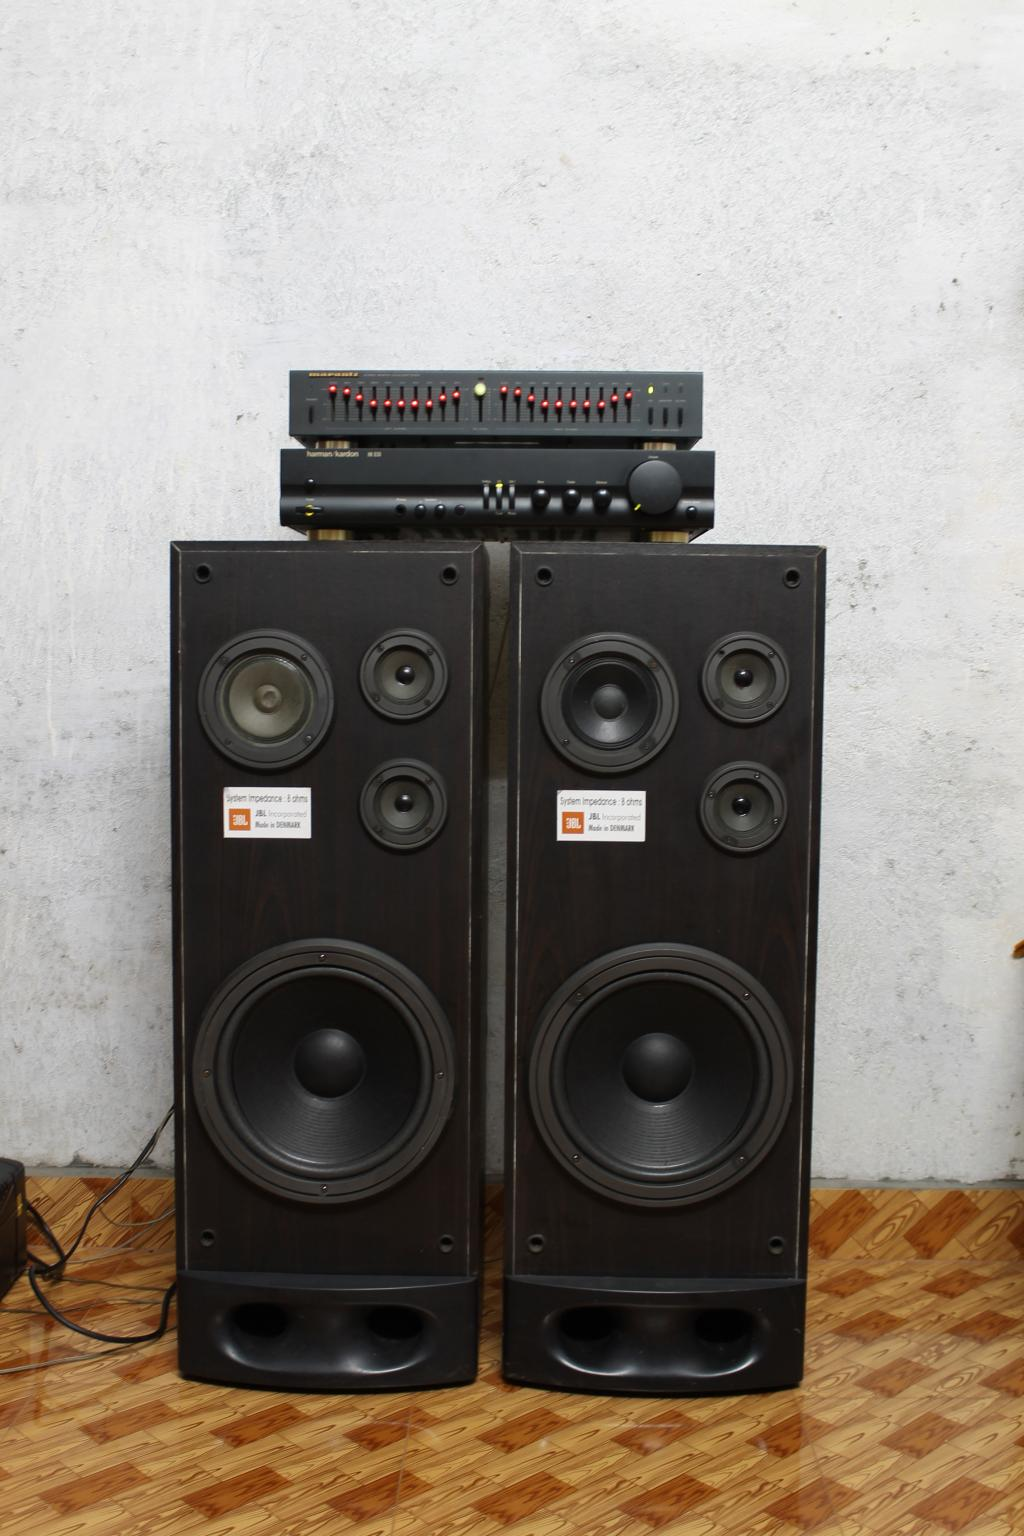 Anyone Can identify this JBL vintage tower speaker ?